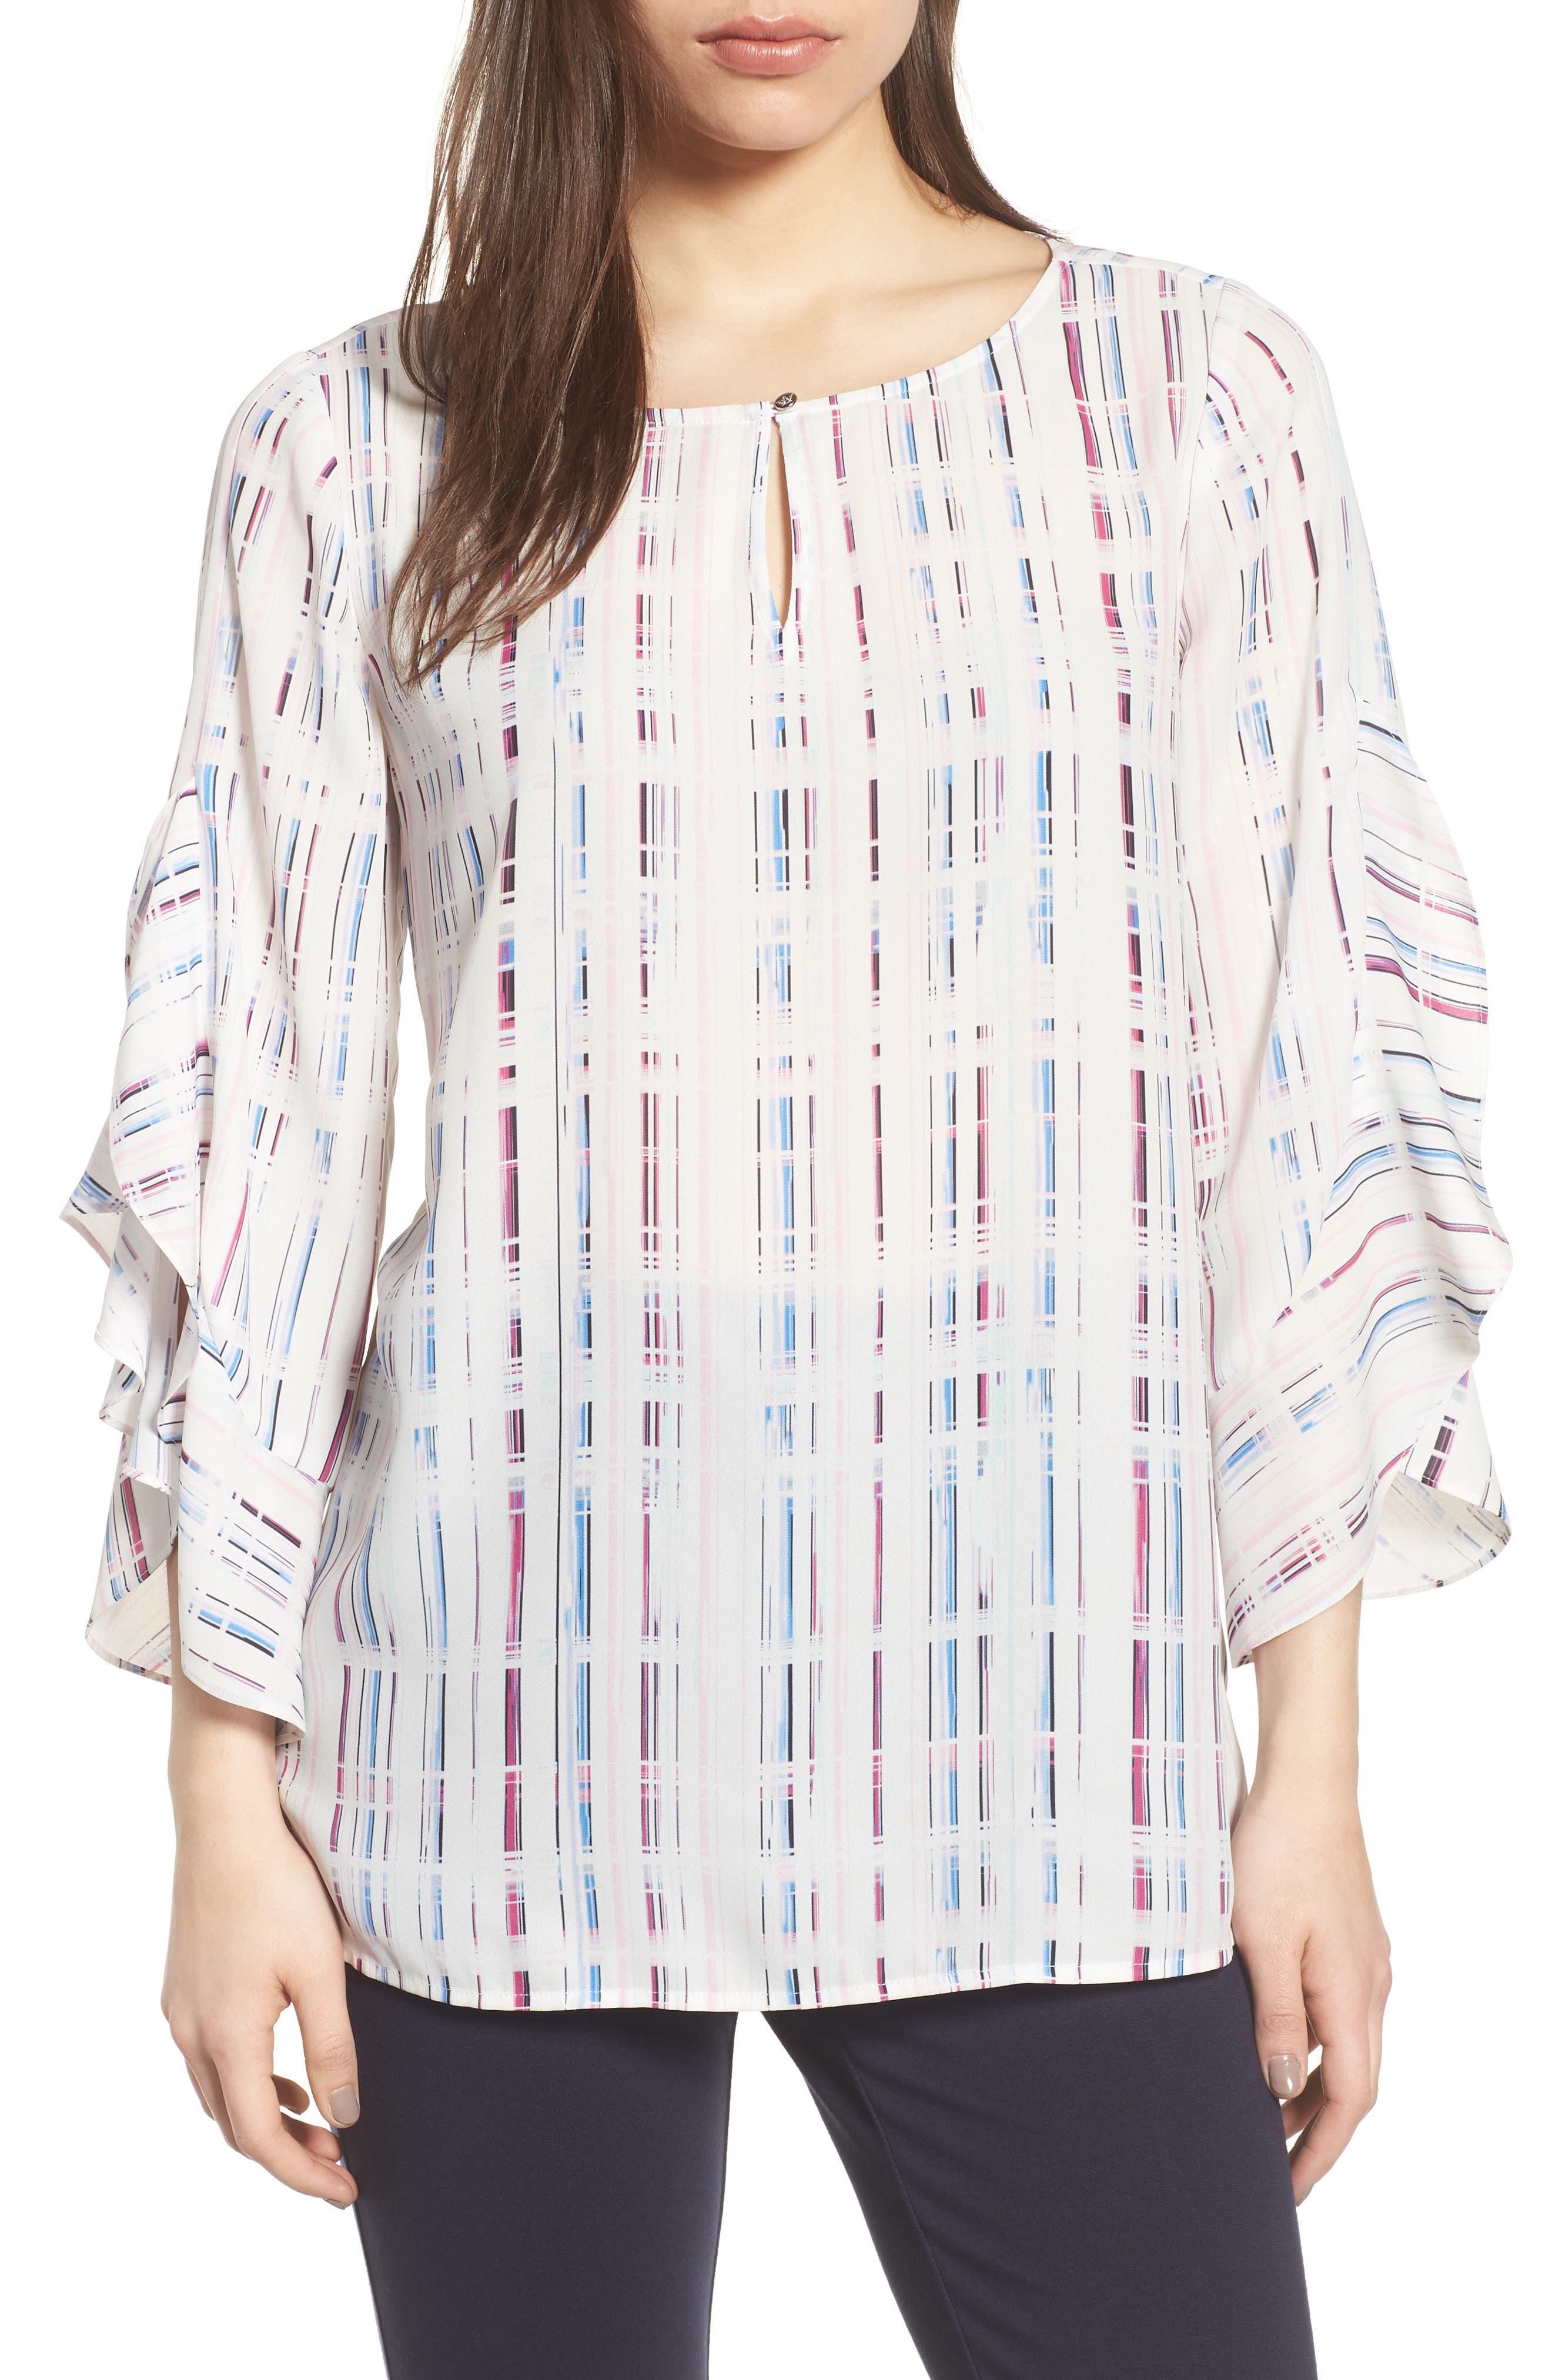 Prism Grid Print Blouse,                             Main thumbnail 1, color,                             900